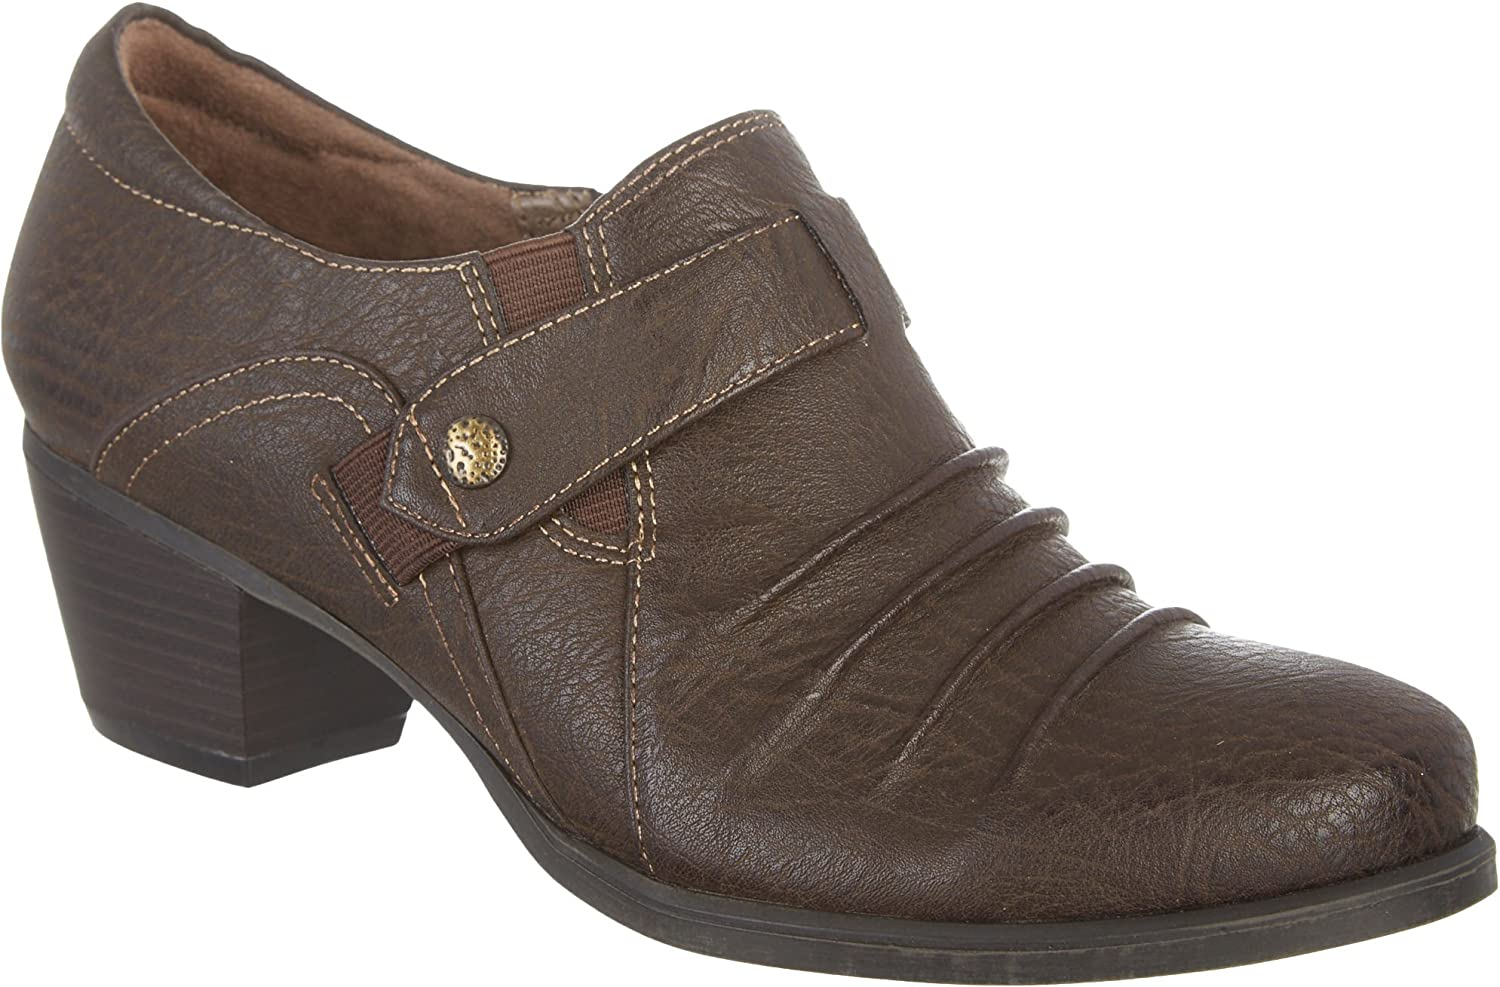 Natural Soul by Naturalizer Womens Kariano shoes 6.5M Brown